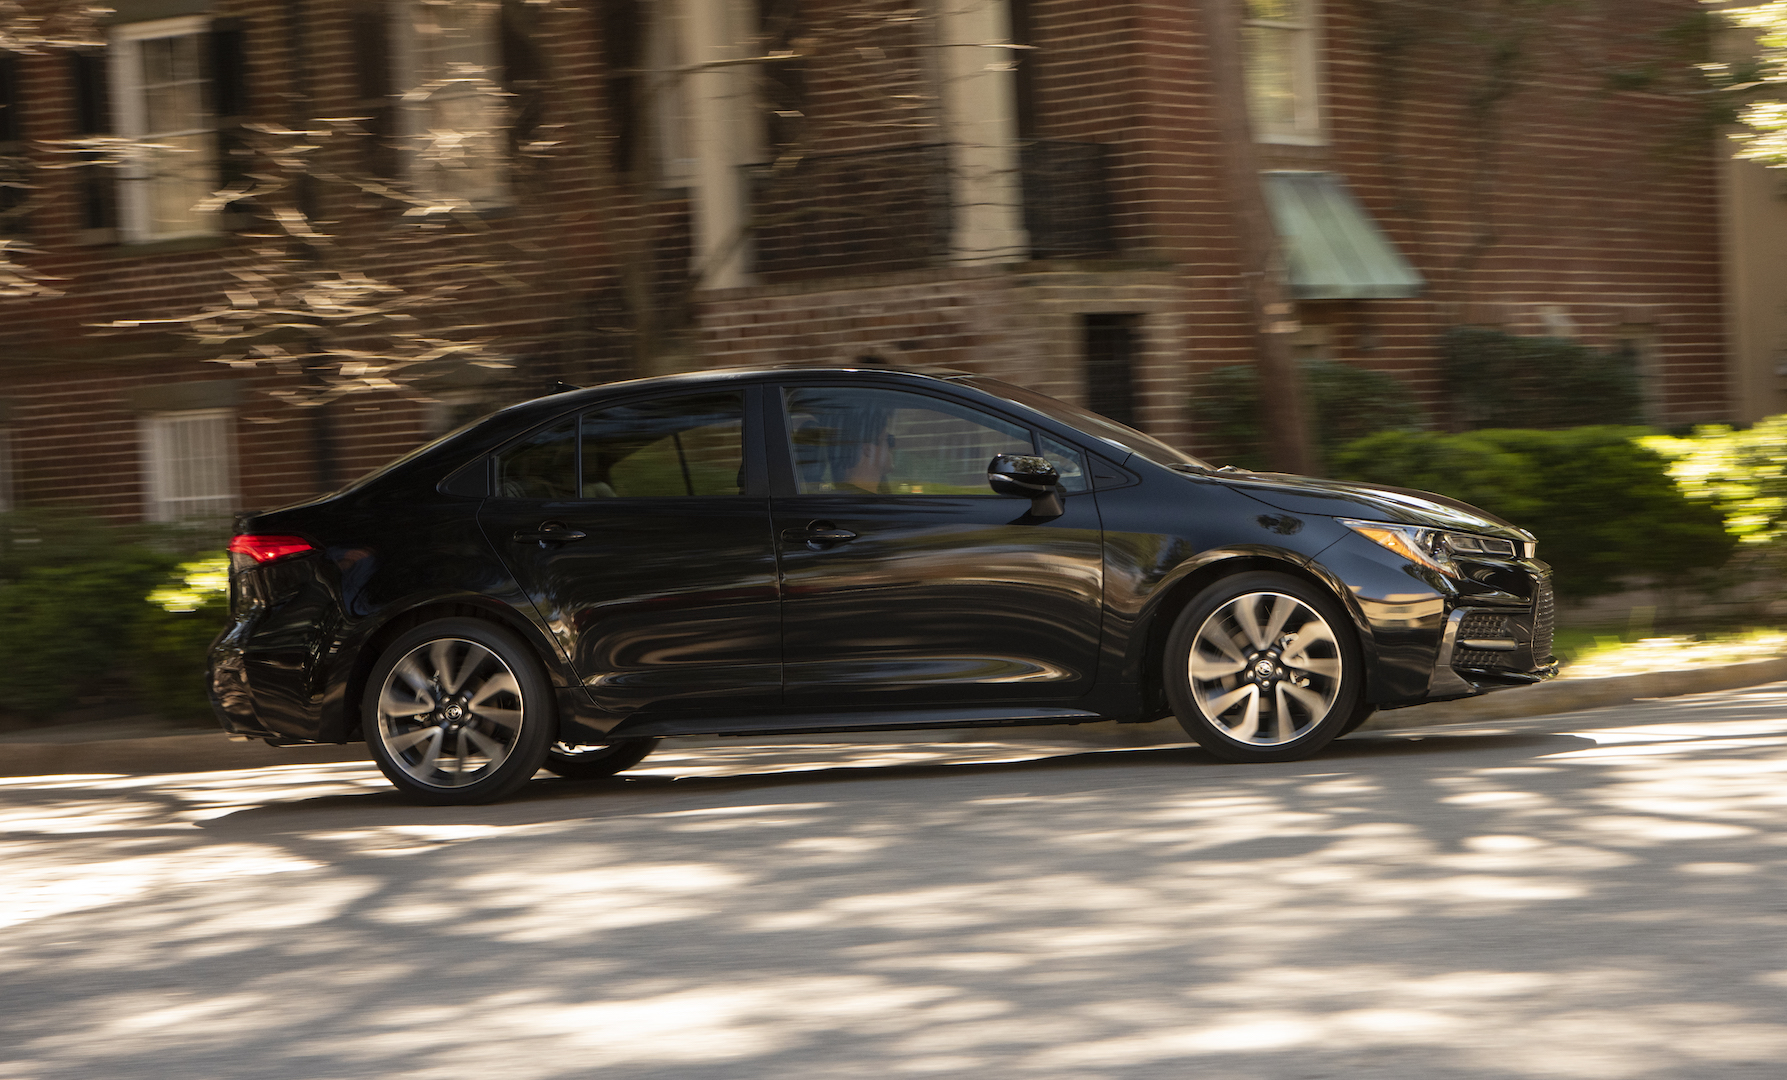 2020_Corolla_XSE_BlackSandPearl_023_v1_current